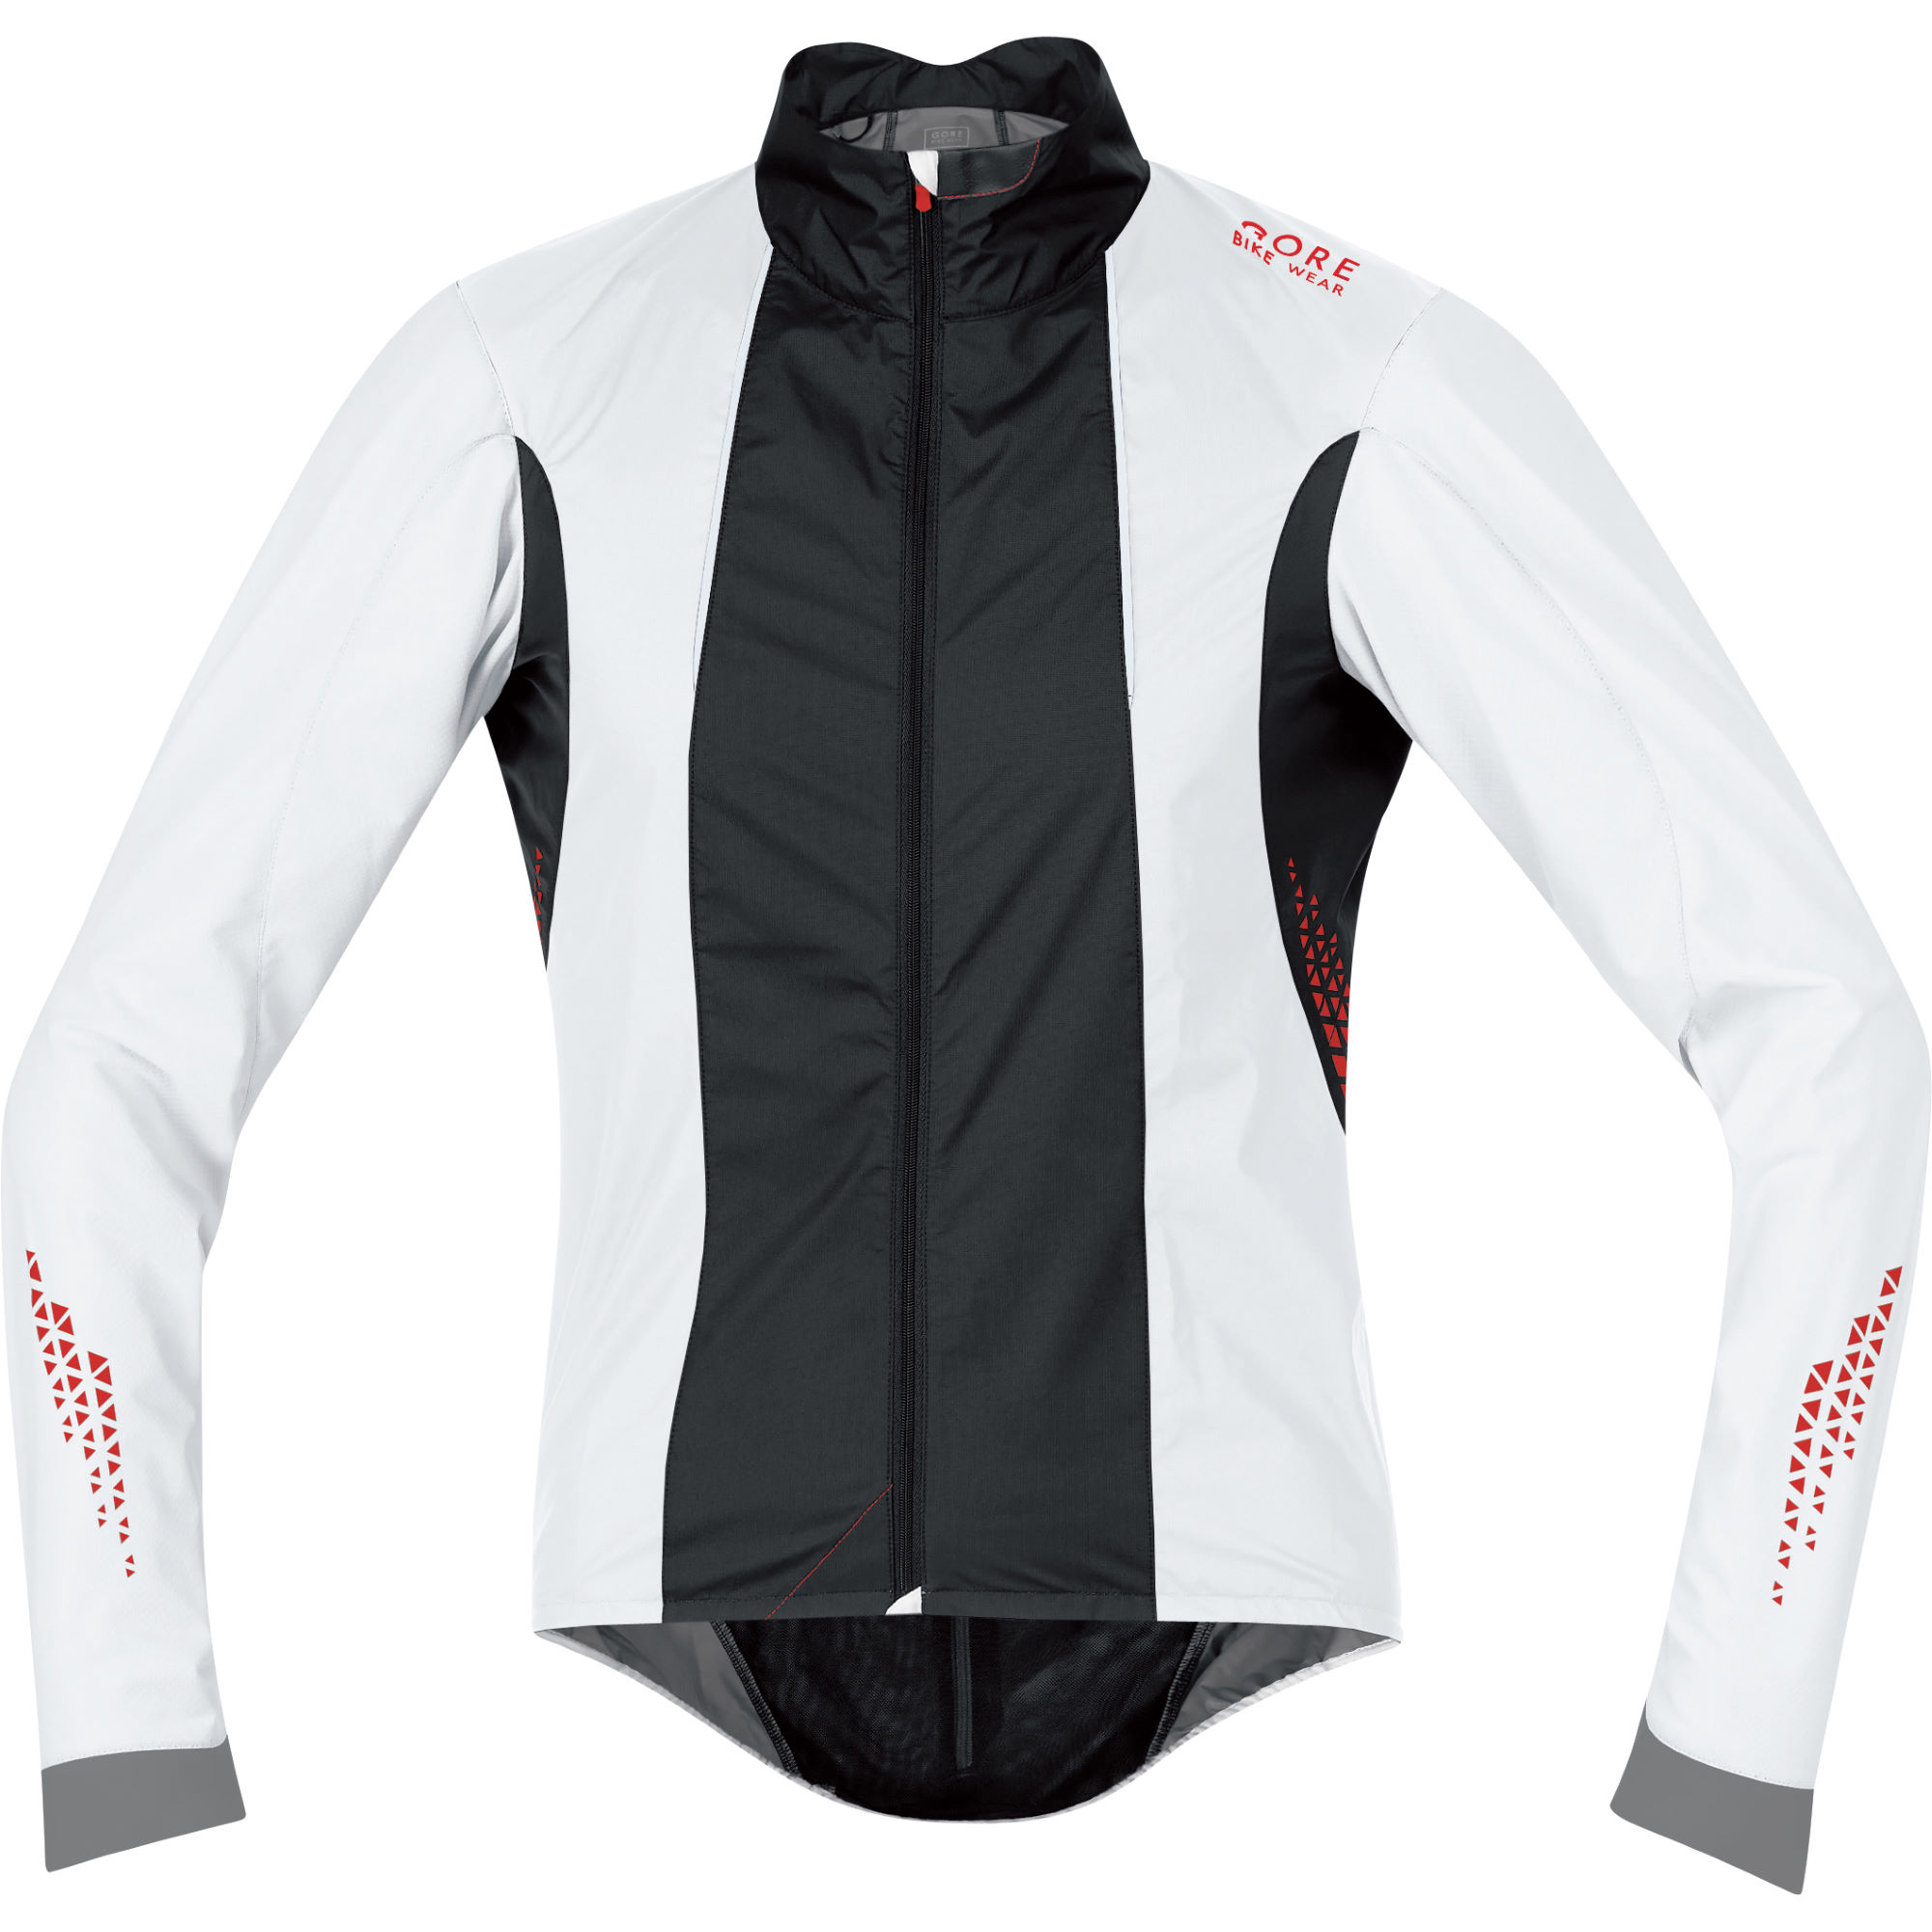 Wiggle Gore Bike Wear Xenon 2 0 Active Shell Jacket